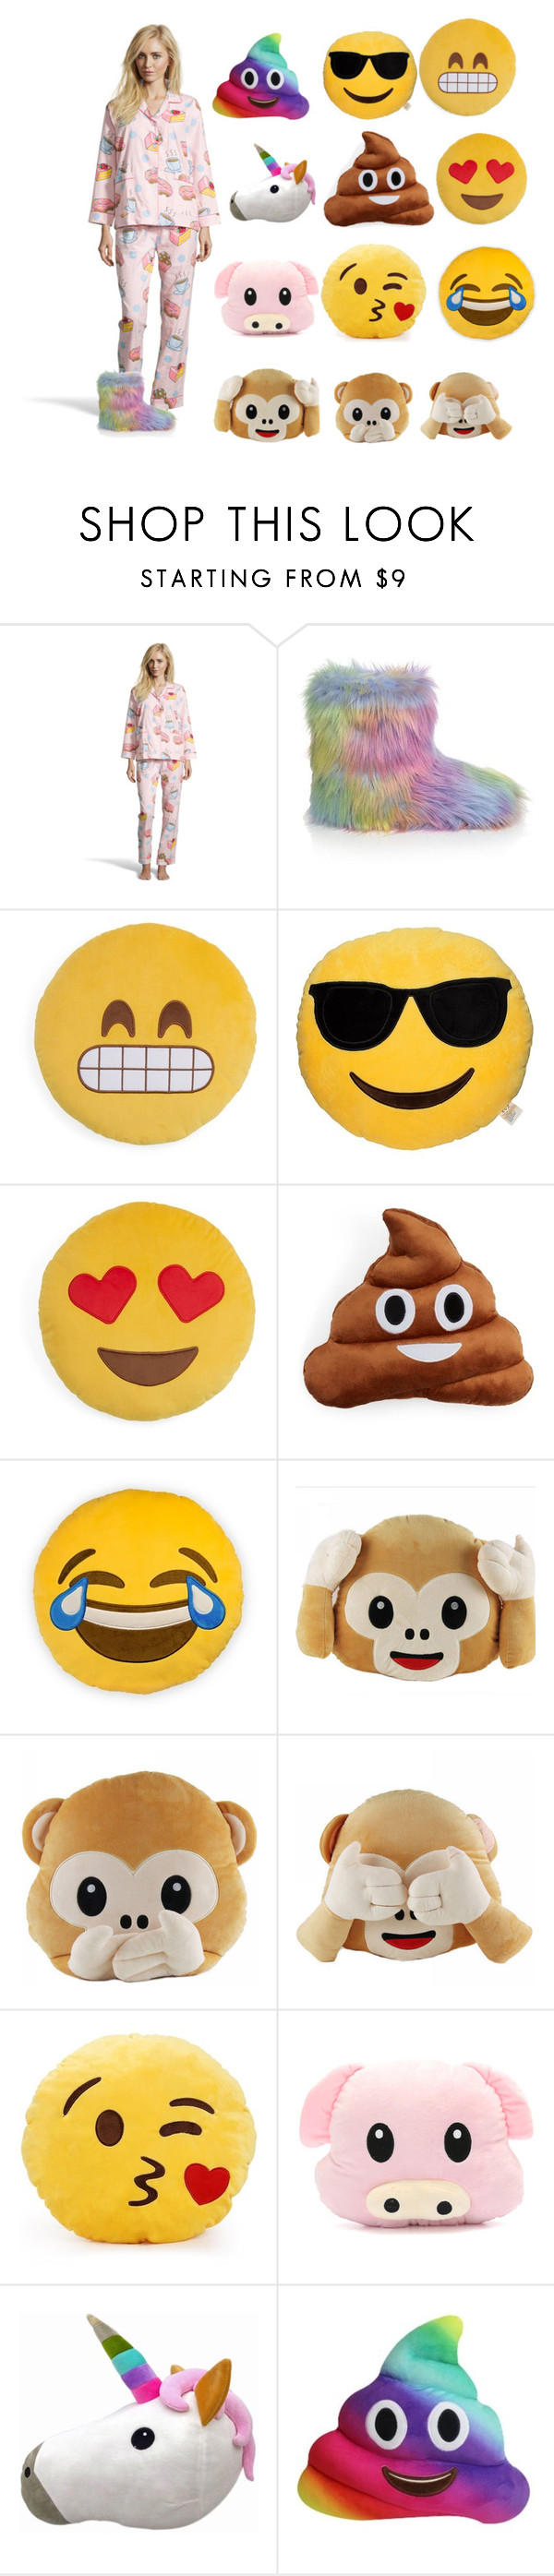 """""""Emoji Bedtime 😎😬😍😘💩🙉🙊🙈🐷🦄"""" by obsessedbug ❤ liked on Polyvore featuring Aegean Apparel and Throwboy"""